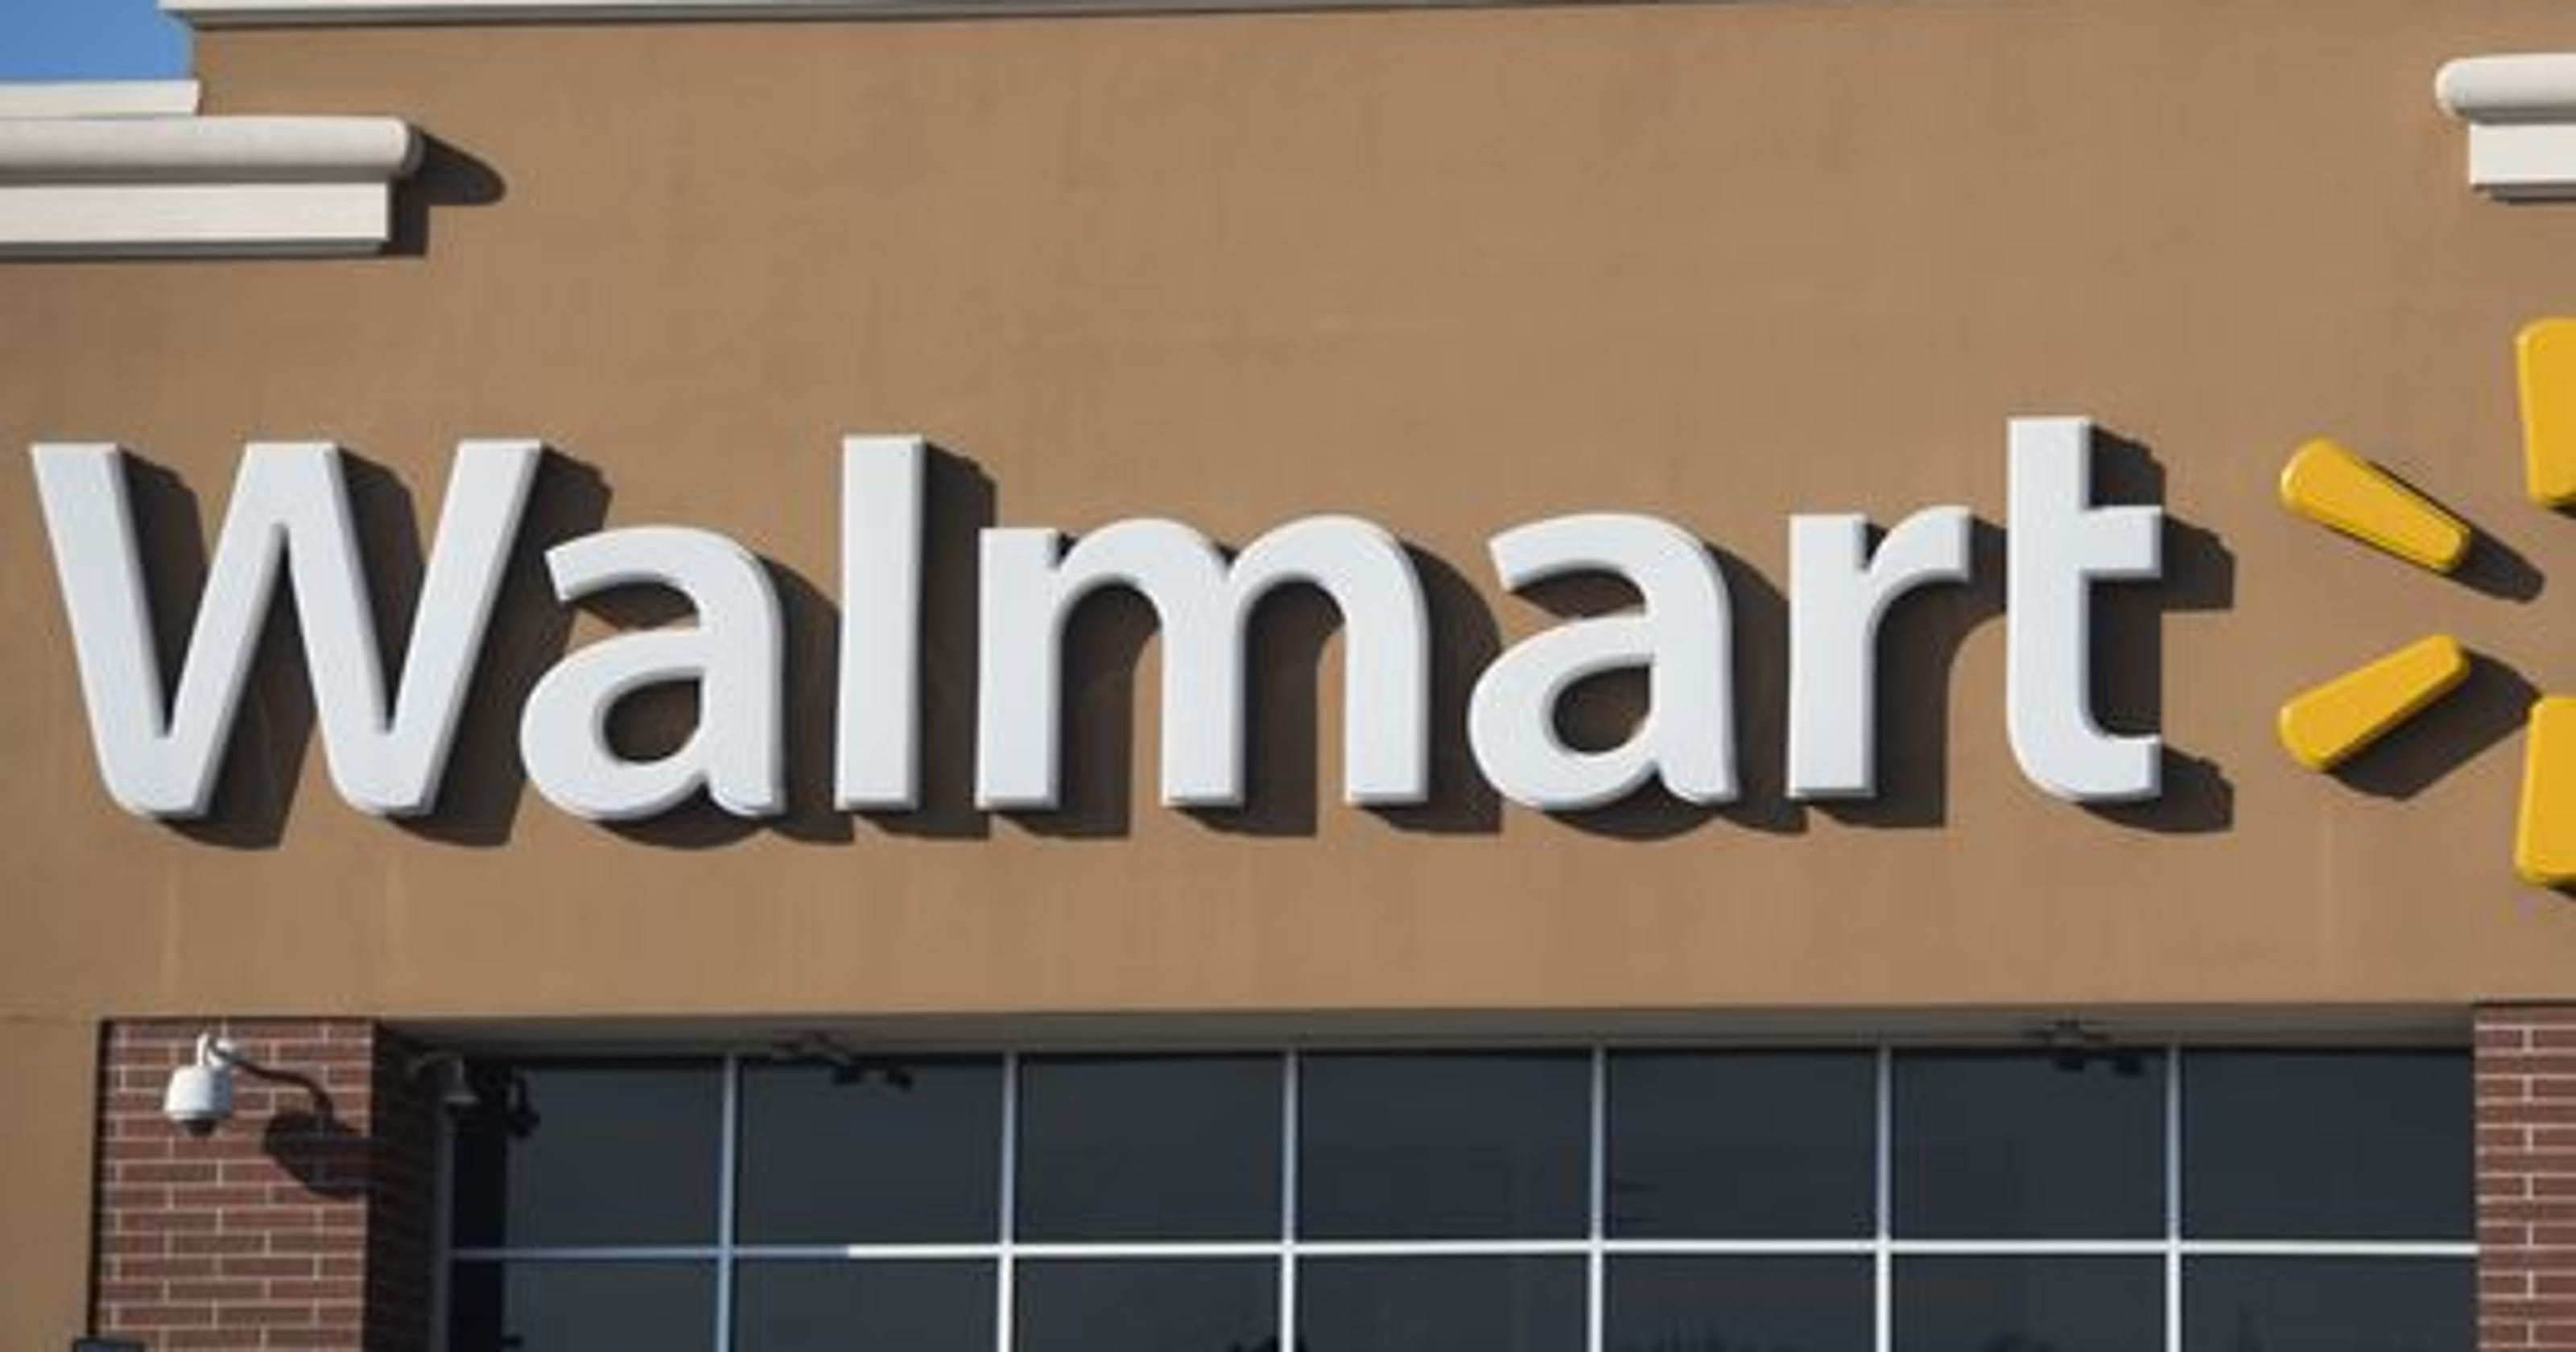 layaway angel pays off more than 106k at walmart stores